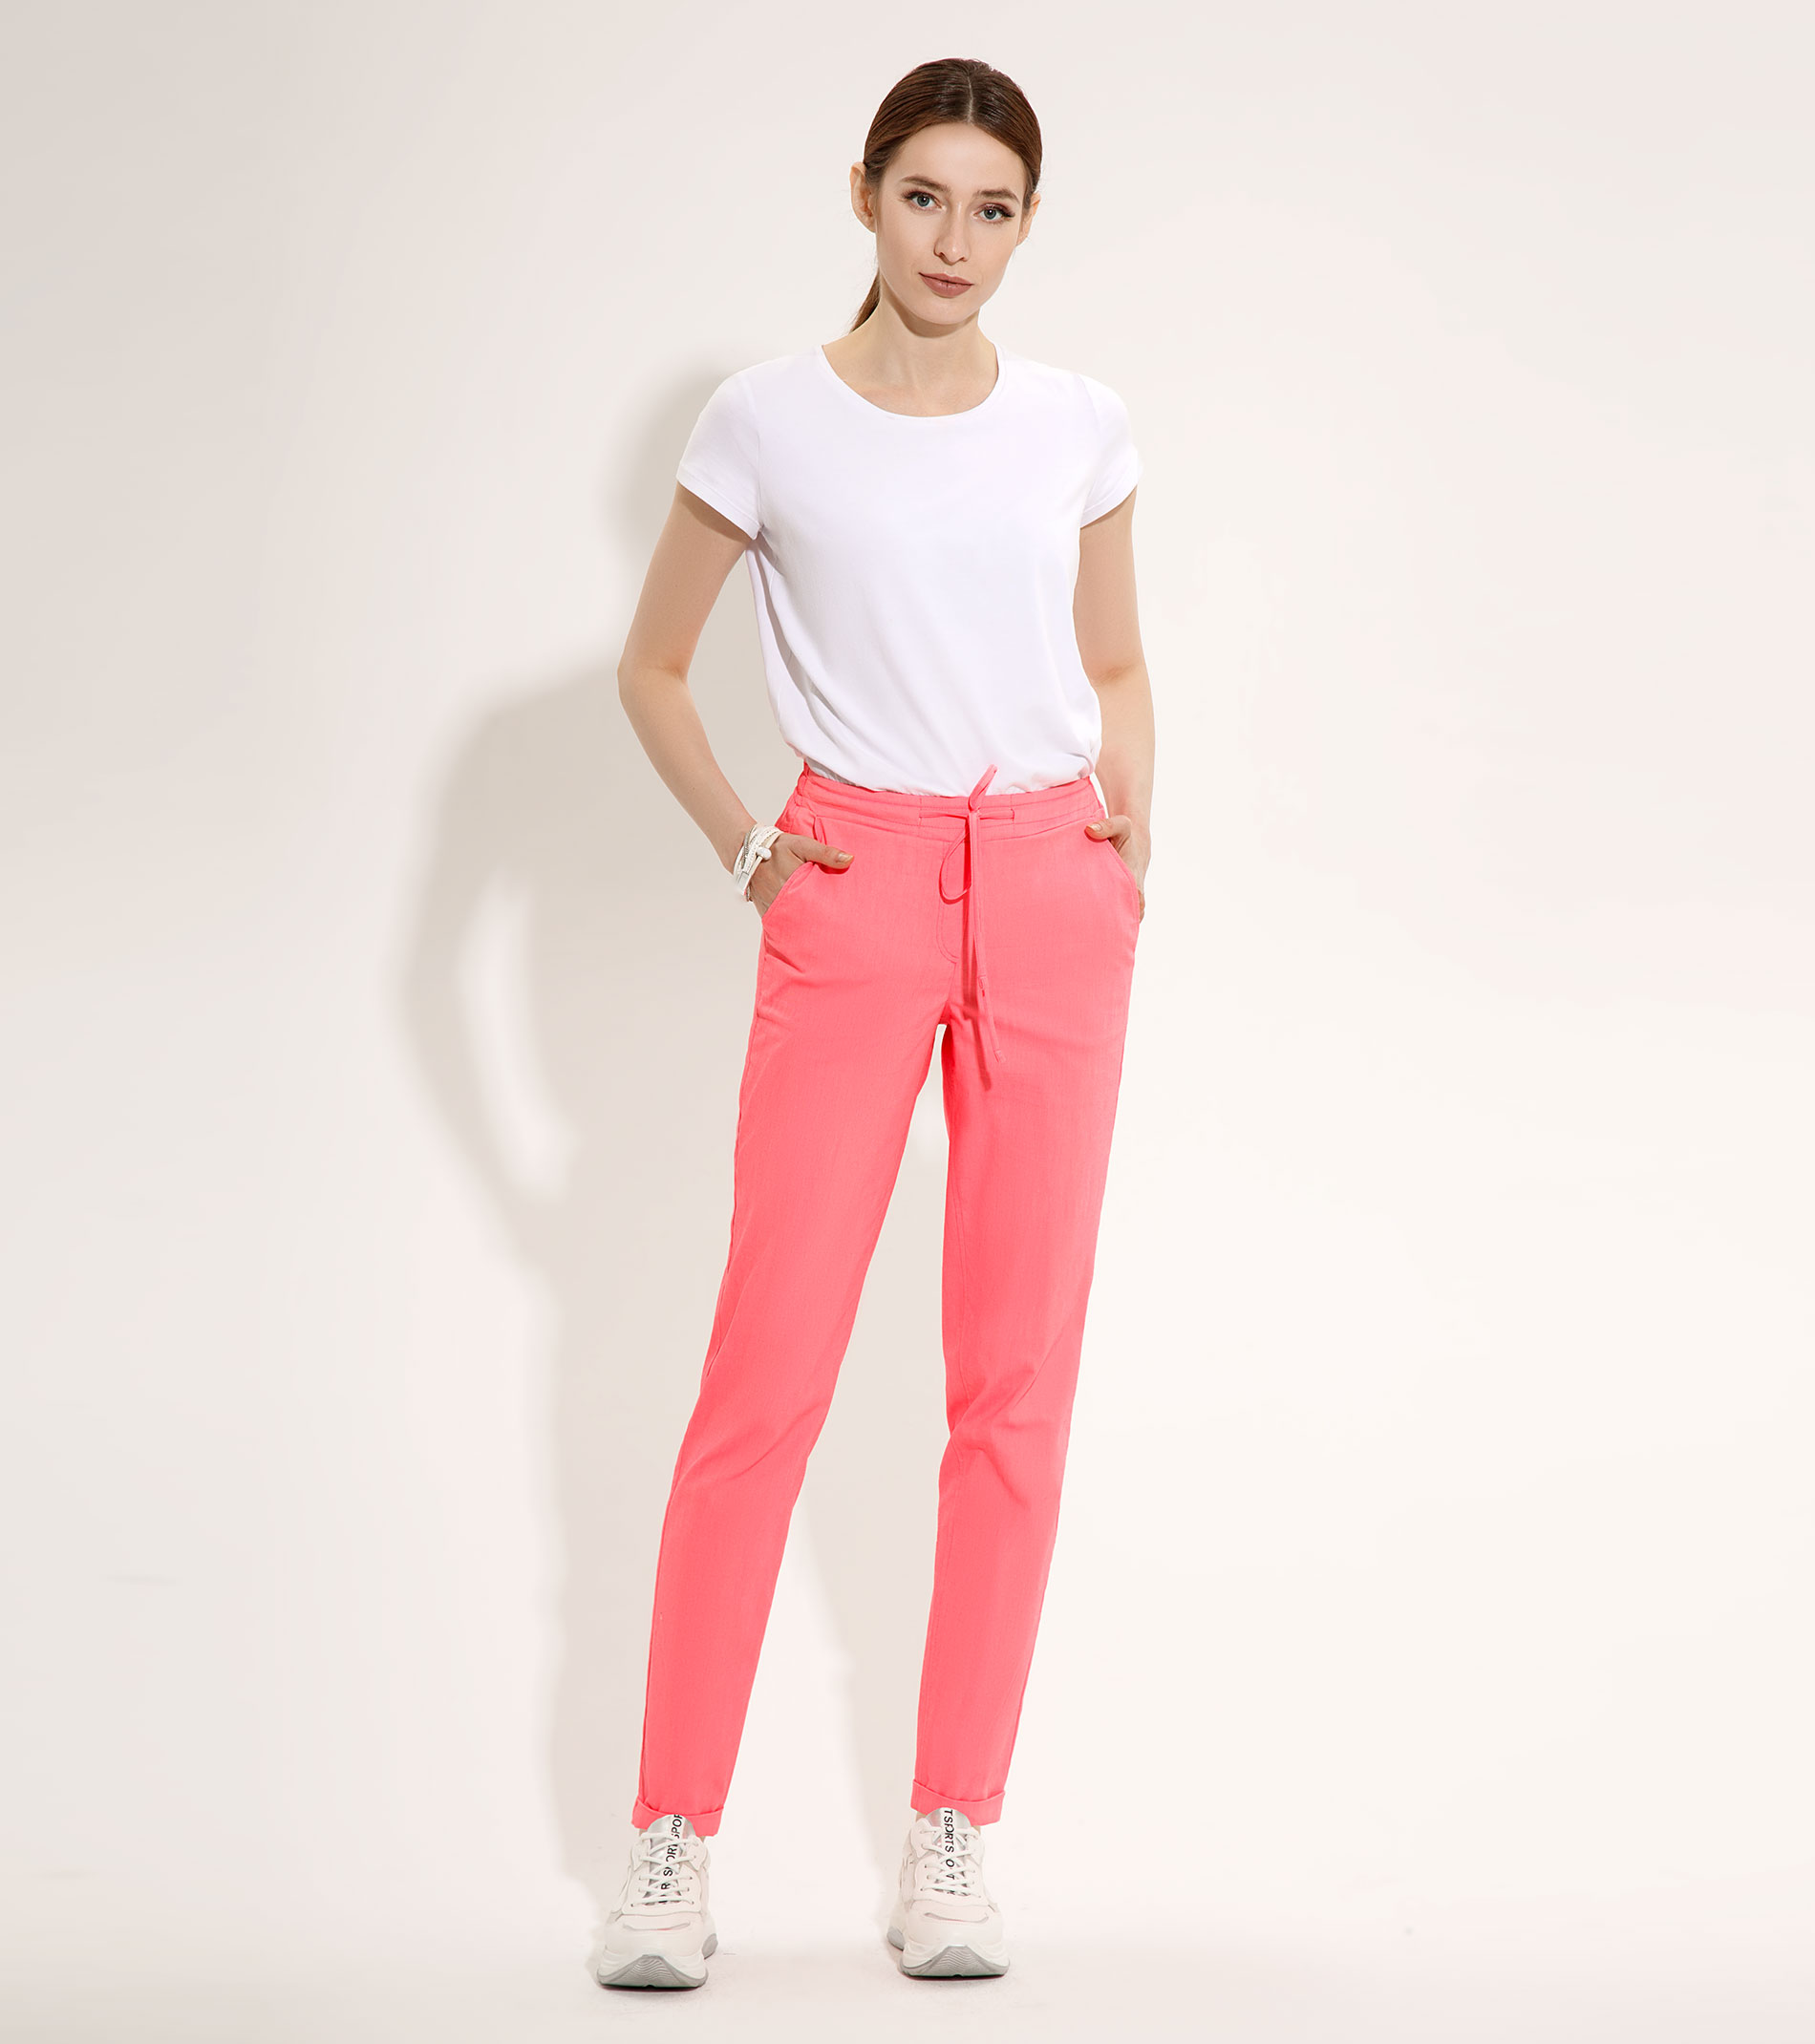 Women's trousers 485060p